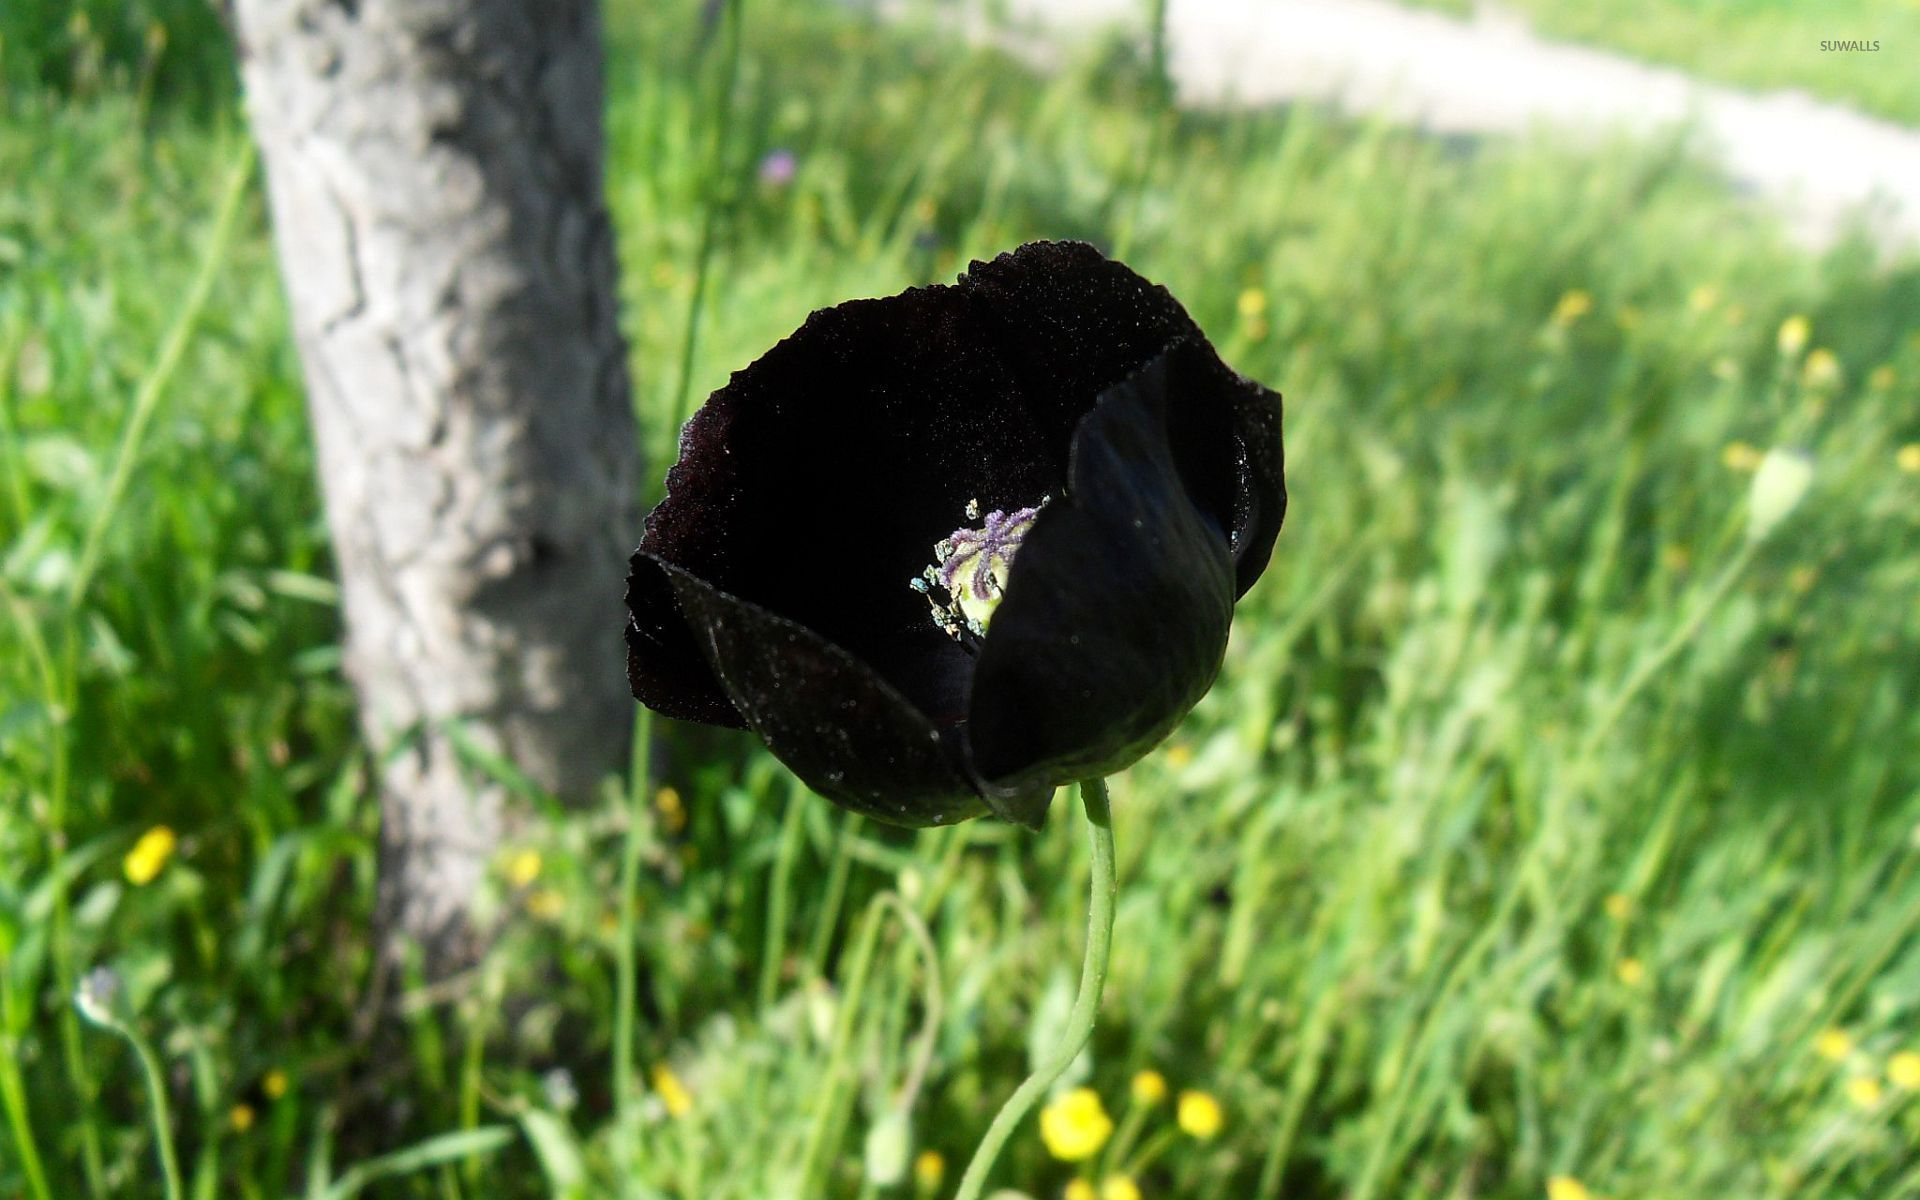 Black poppy wallpaper - Flower wallpapers - #9262